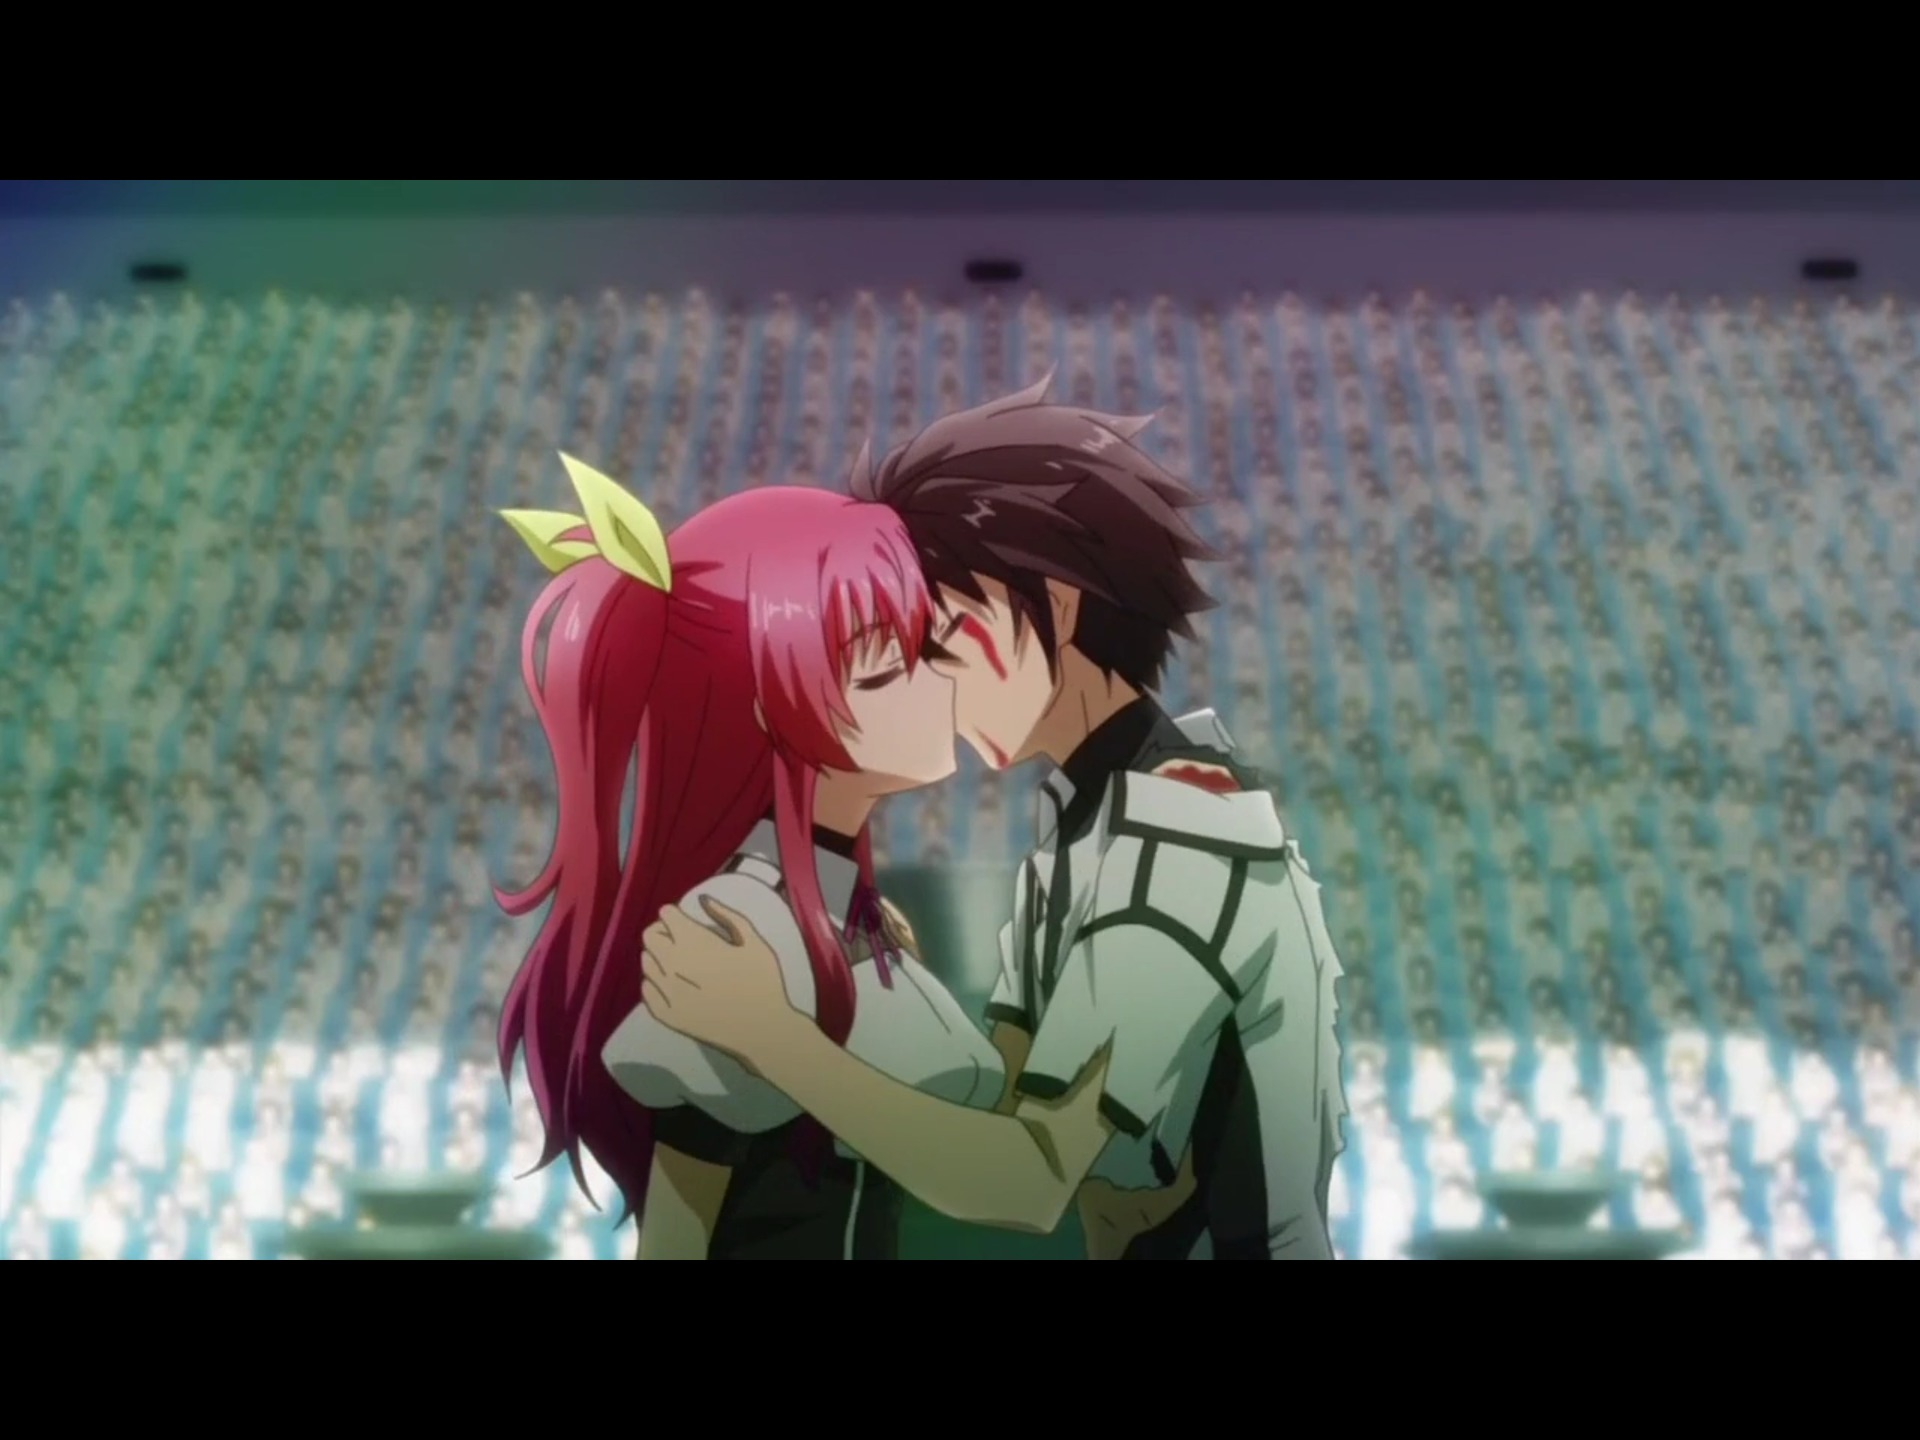 Download anime movie romance sub indo mp4 player